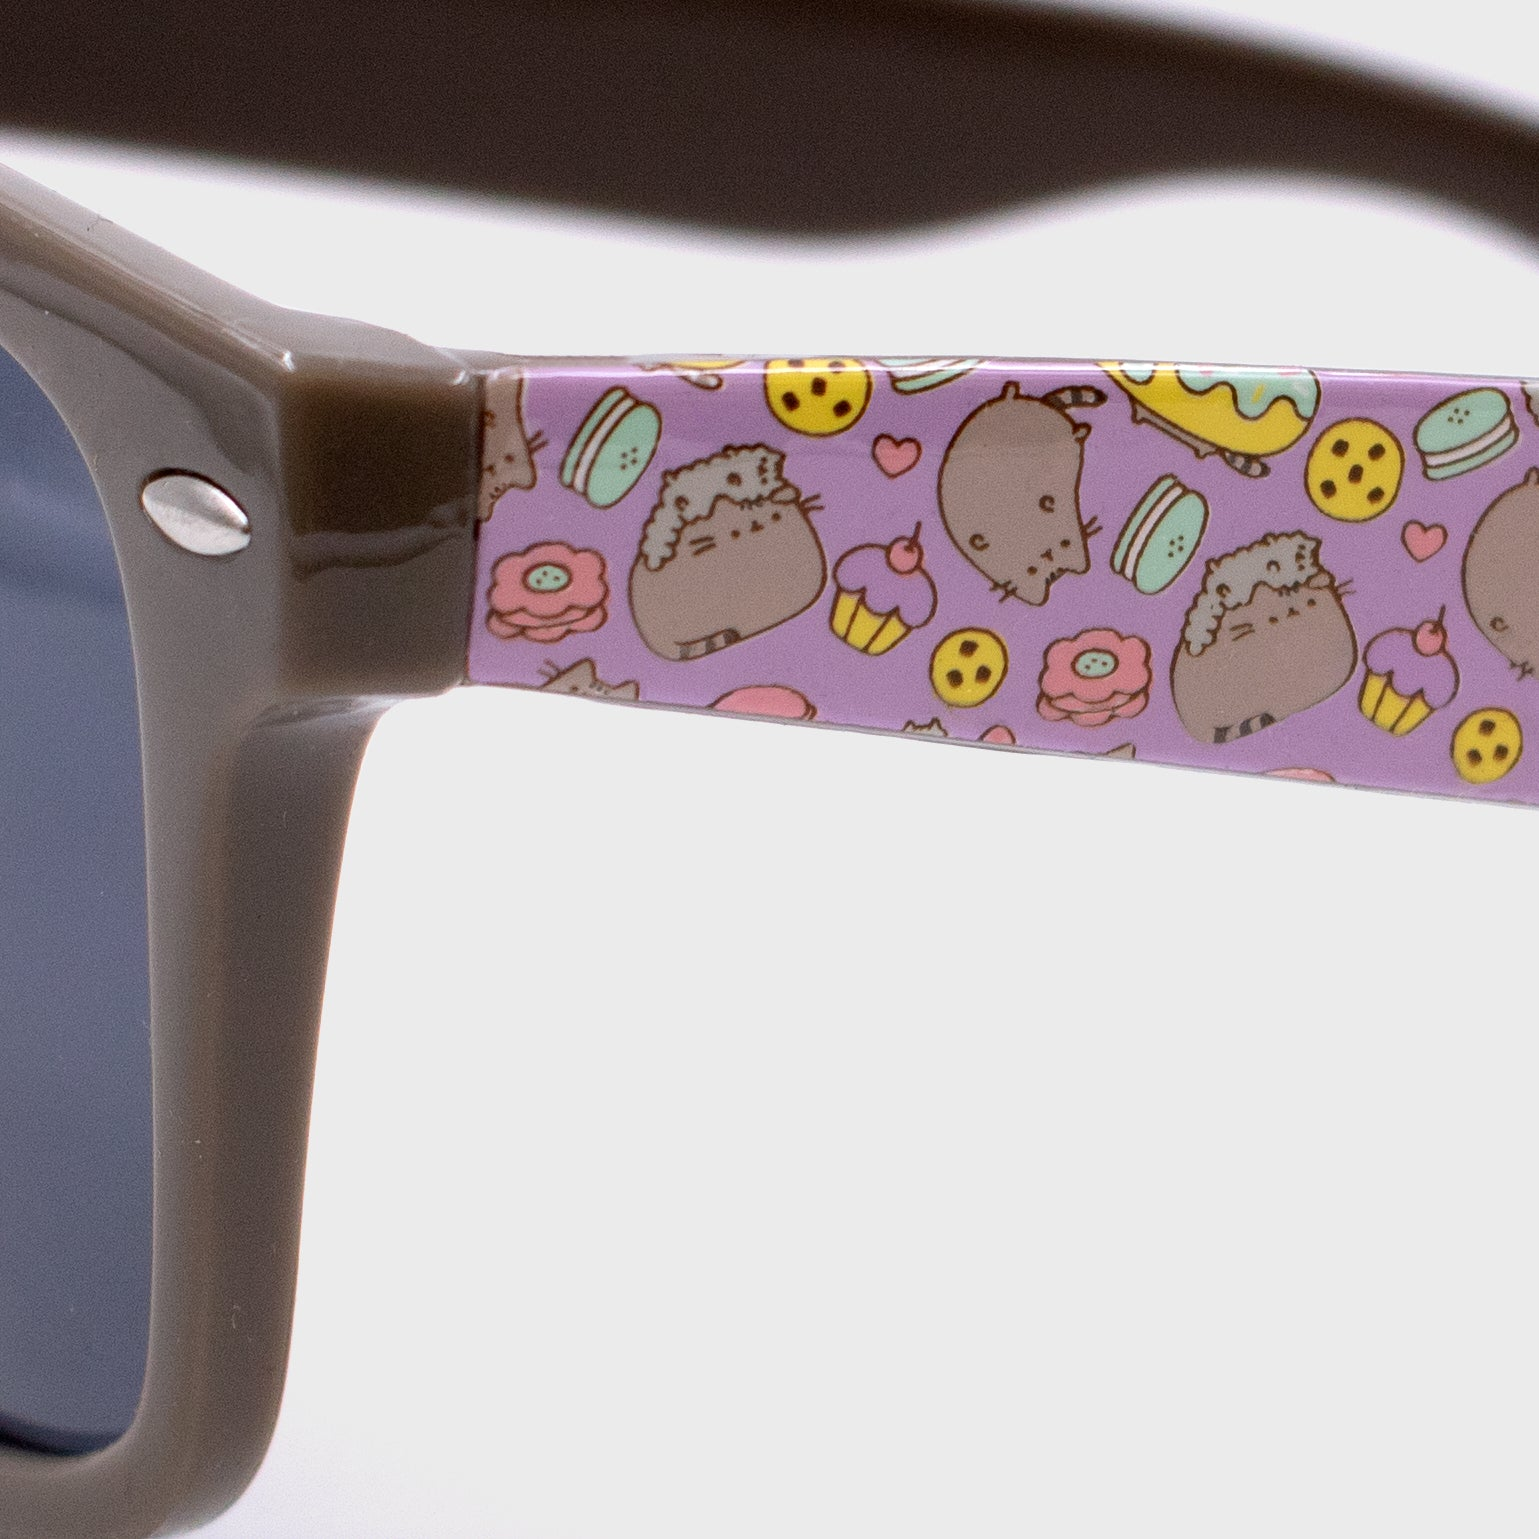 pusheen sunglasses sun eyewear accessory cute adorable cat mermaid culturefly